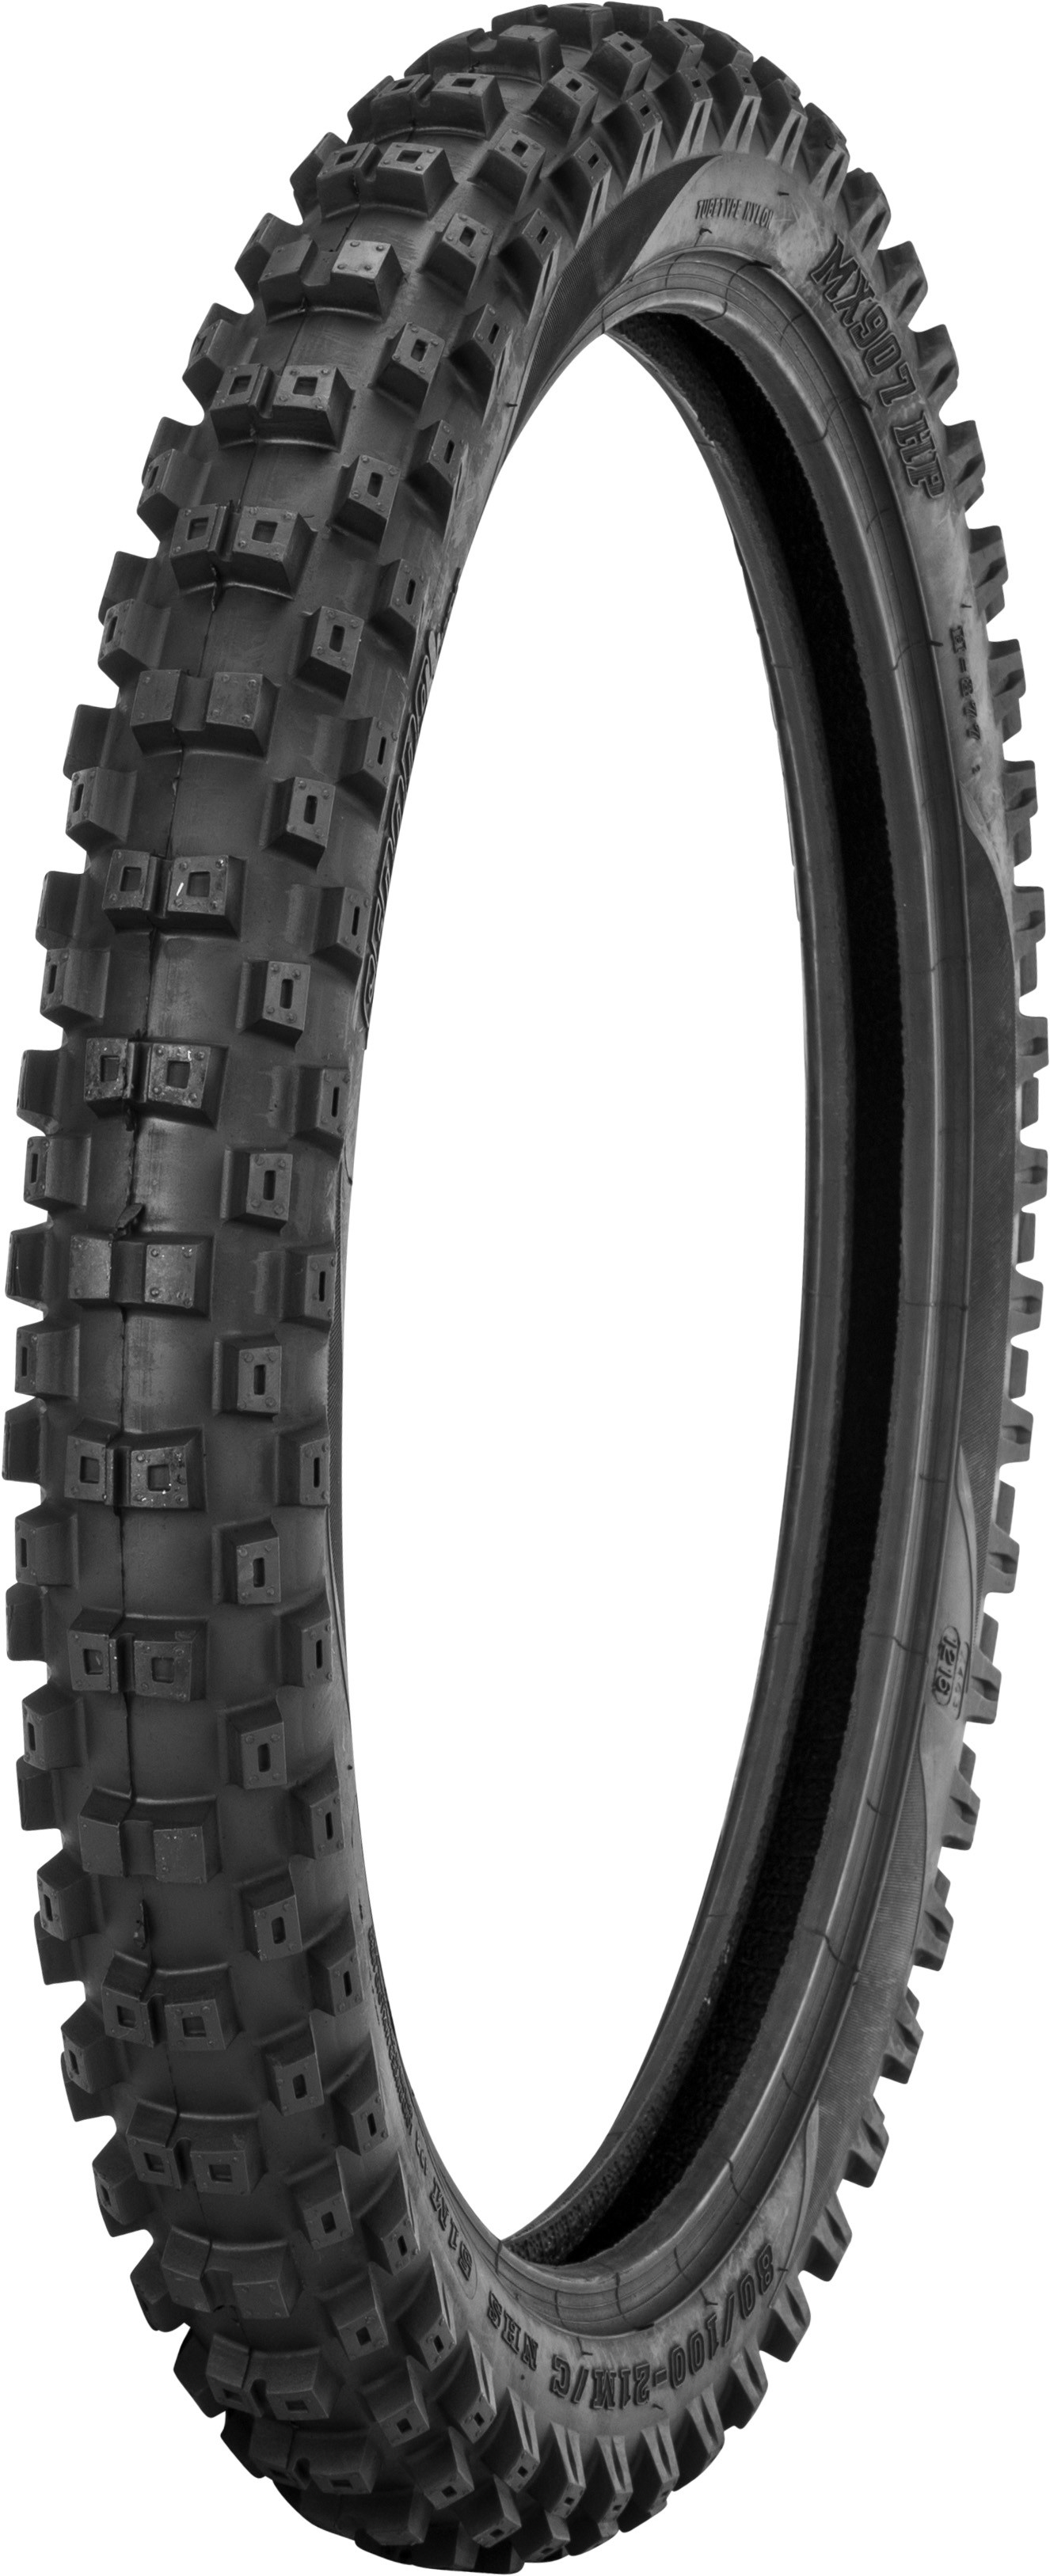 Sedona MX1209018HP Tire Mx907Hp Rear 120/90-18 65M Bias Tt